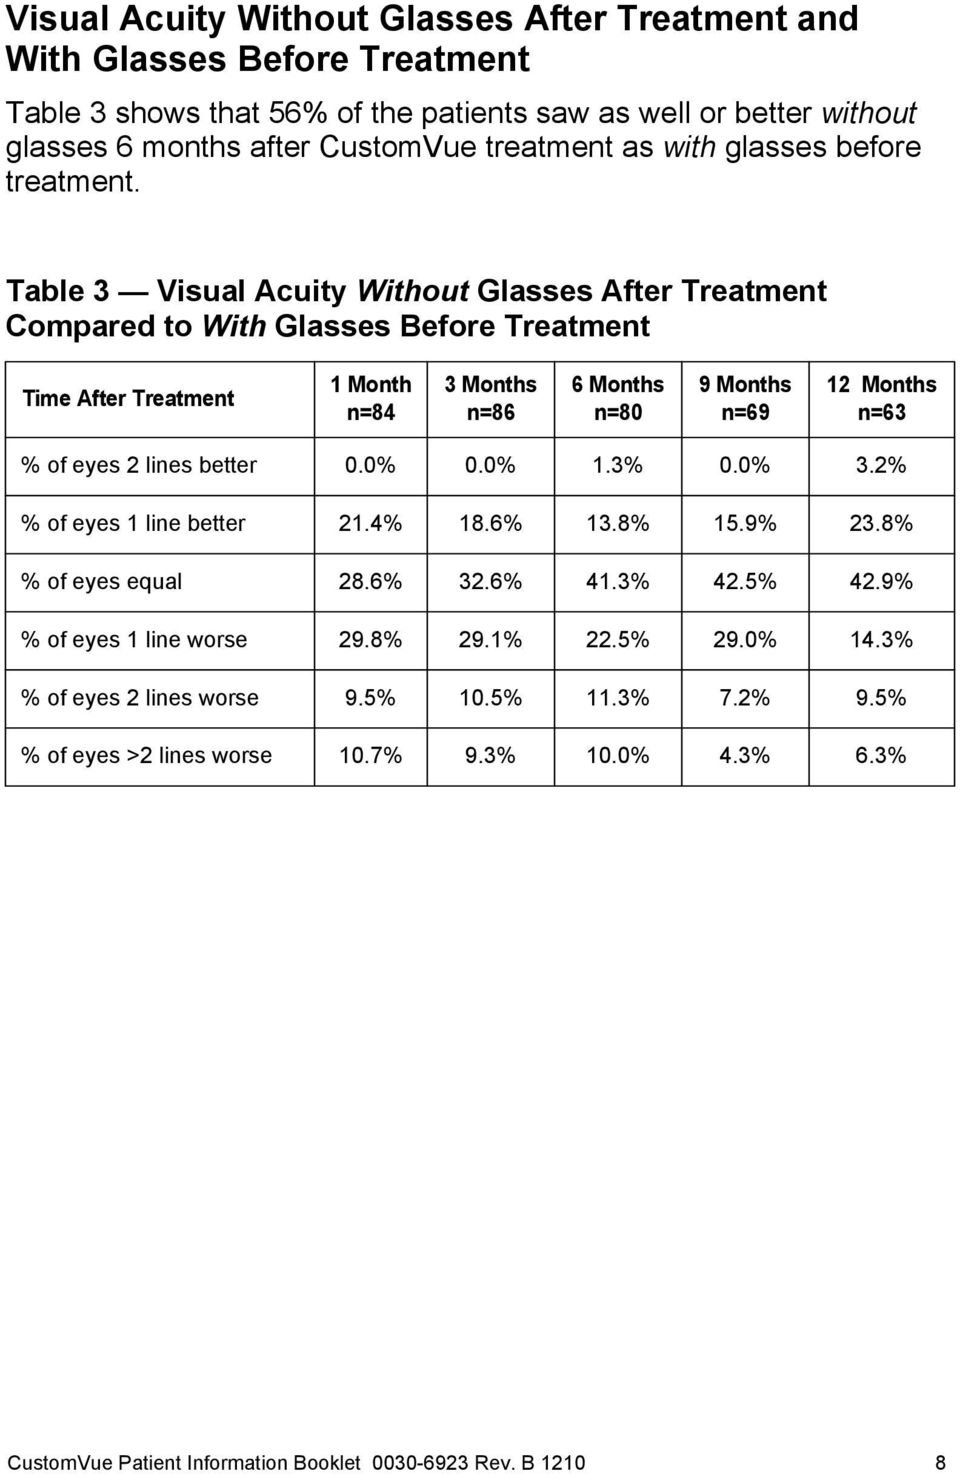 Table 3 Visual Acuity Without Glasses After Treatment Compared to With Glasses Before Treatment Time After Treatment 1 Month n=84 3 Months n=86 6 Months n=80 9 Months n=69 12 Months n=63 % of